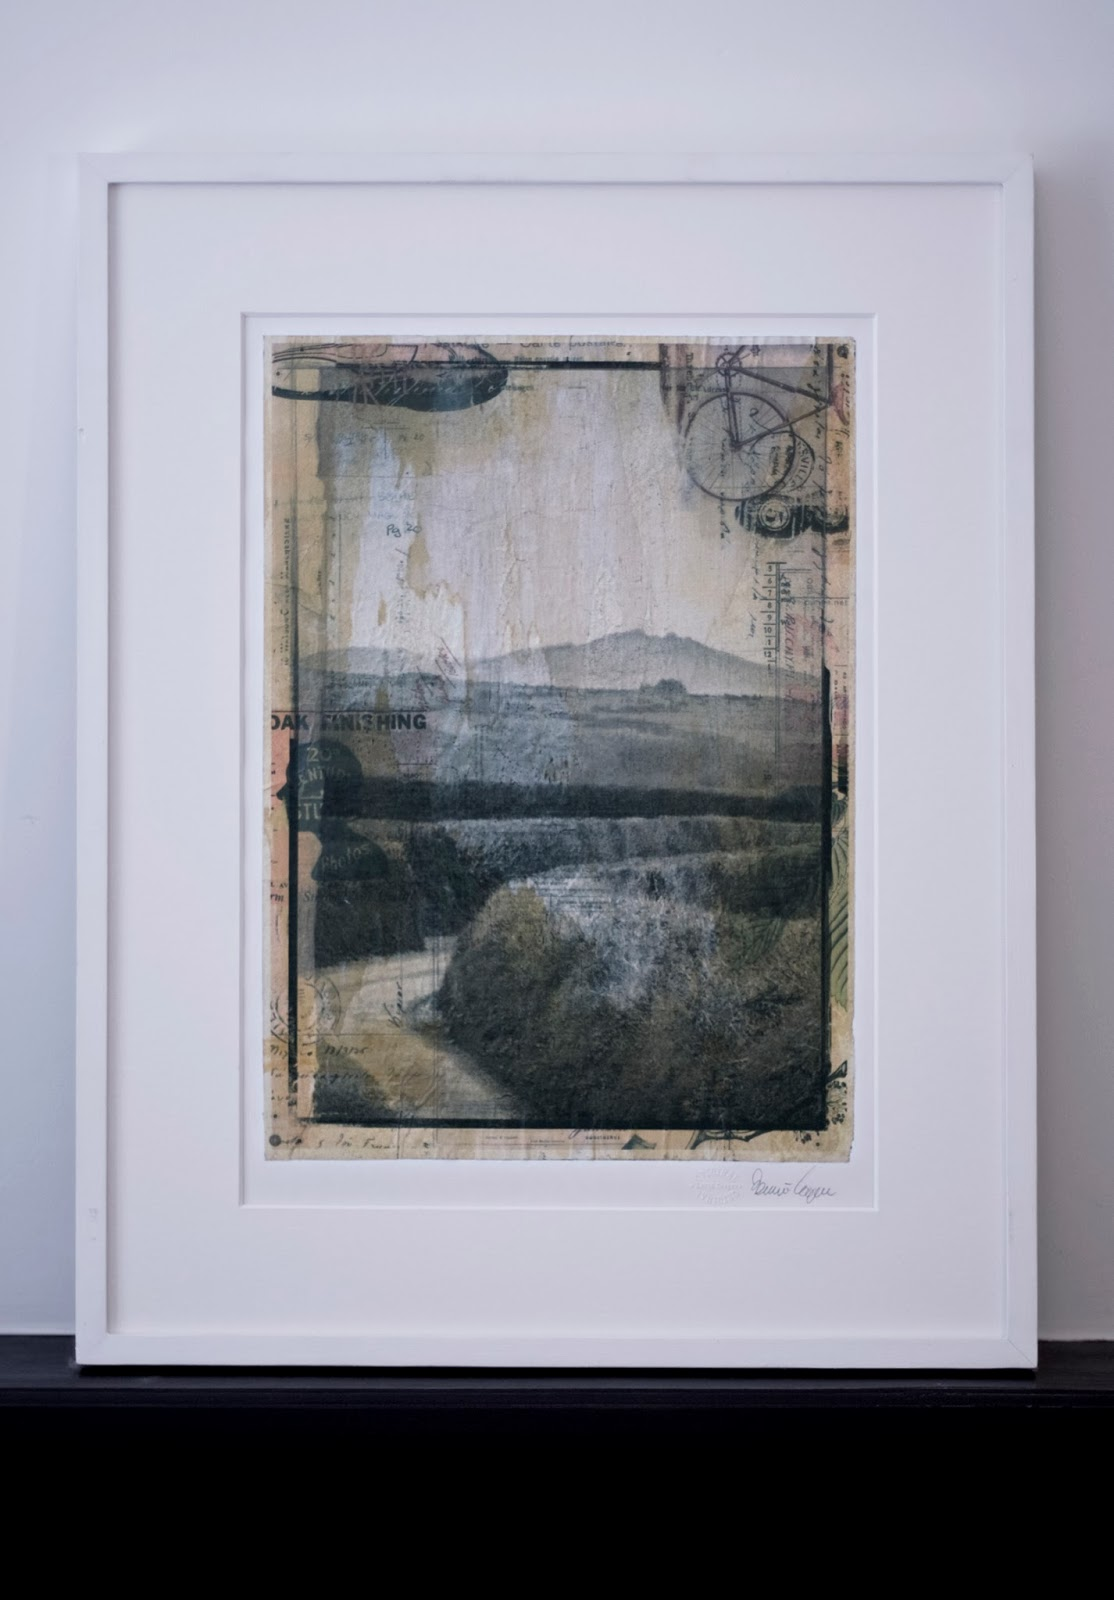 Landscape, Photo, Collage, Framed Original, Layers, Paper, Cornwall